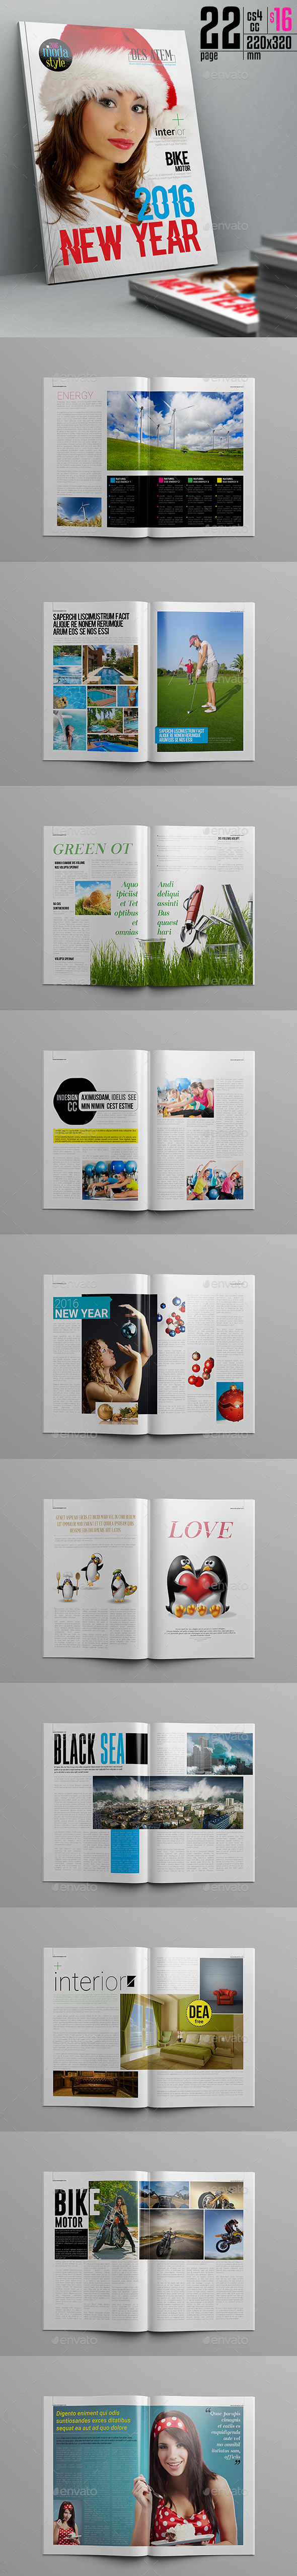 New Year Magazine Template 22 Page - Magazines Print Templates